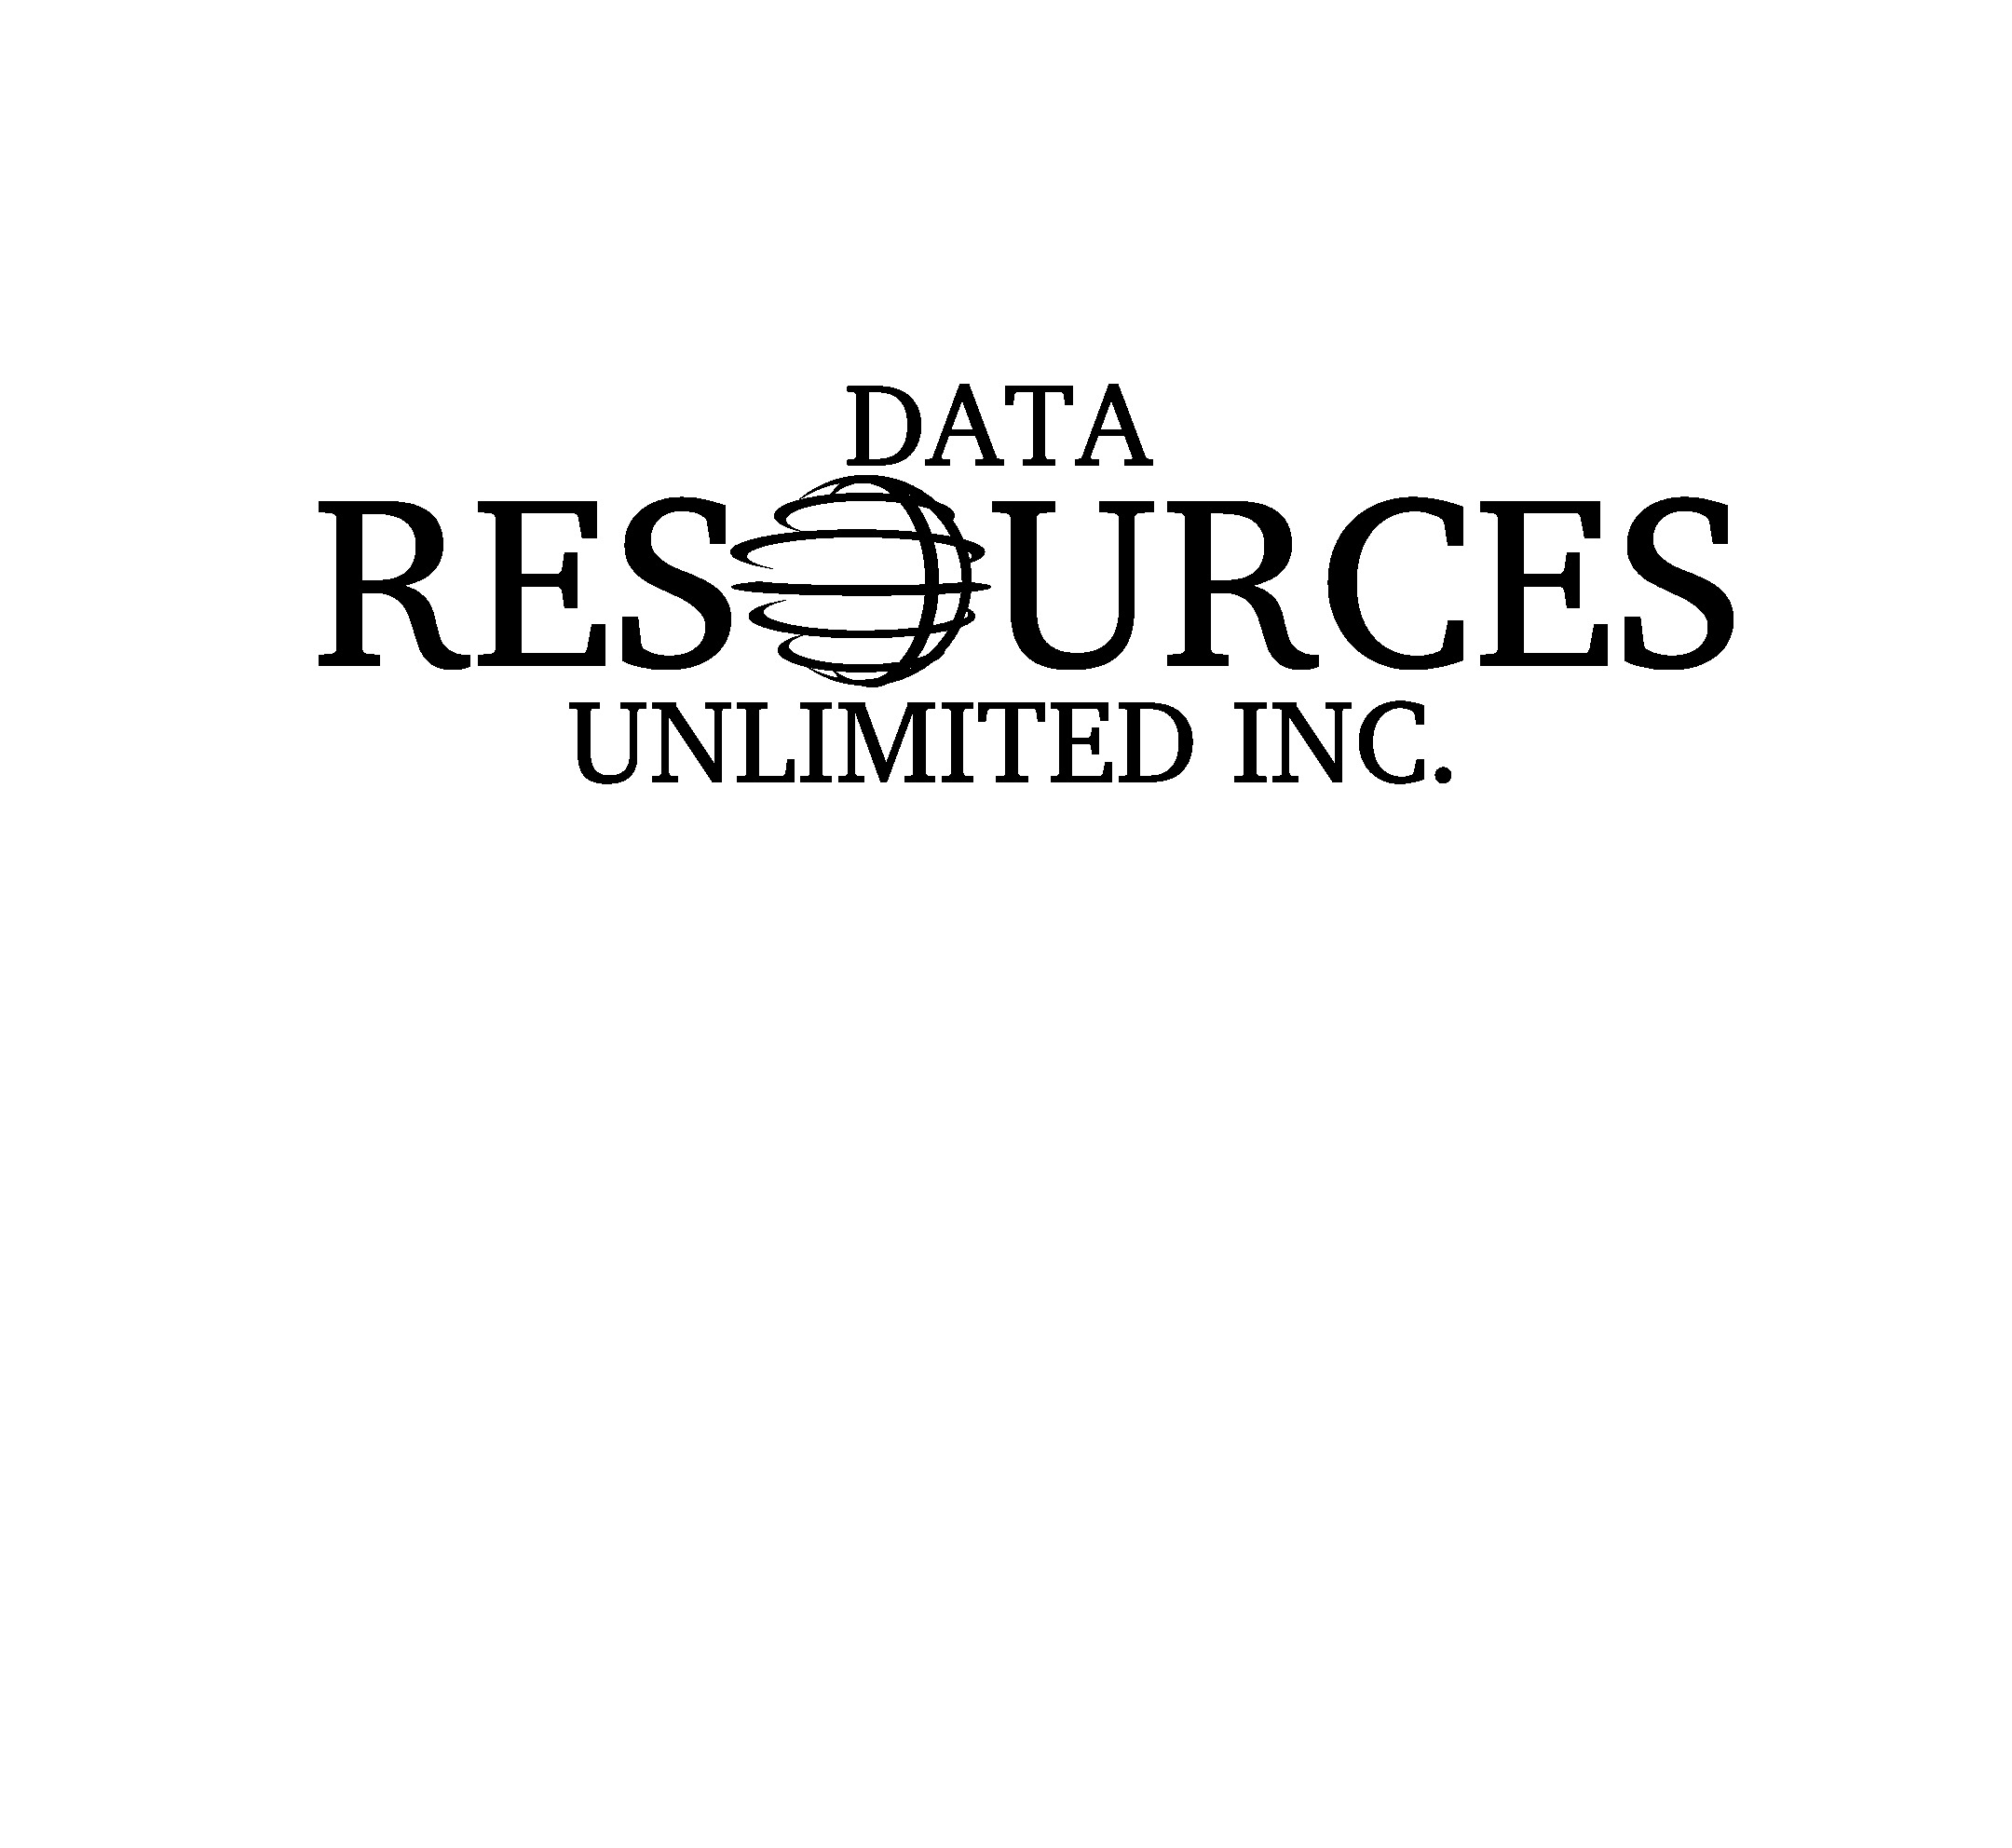 Data Resources Unlimited